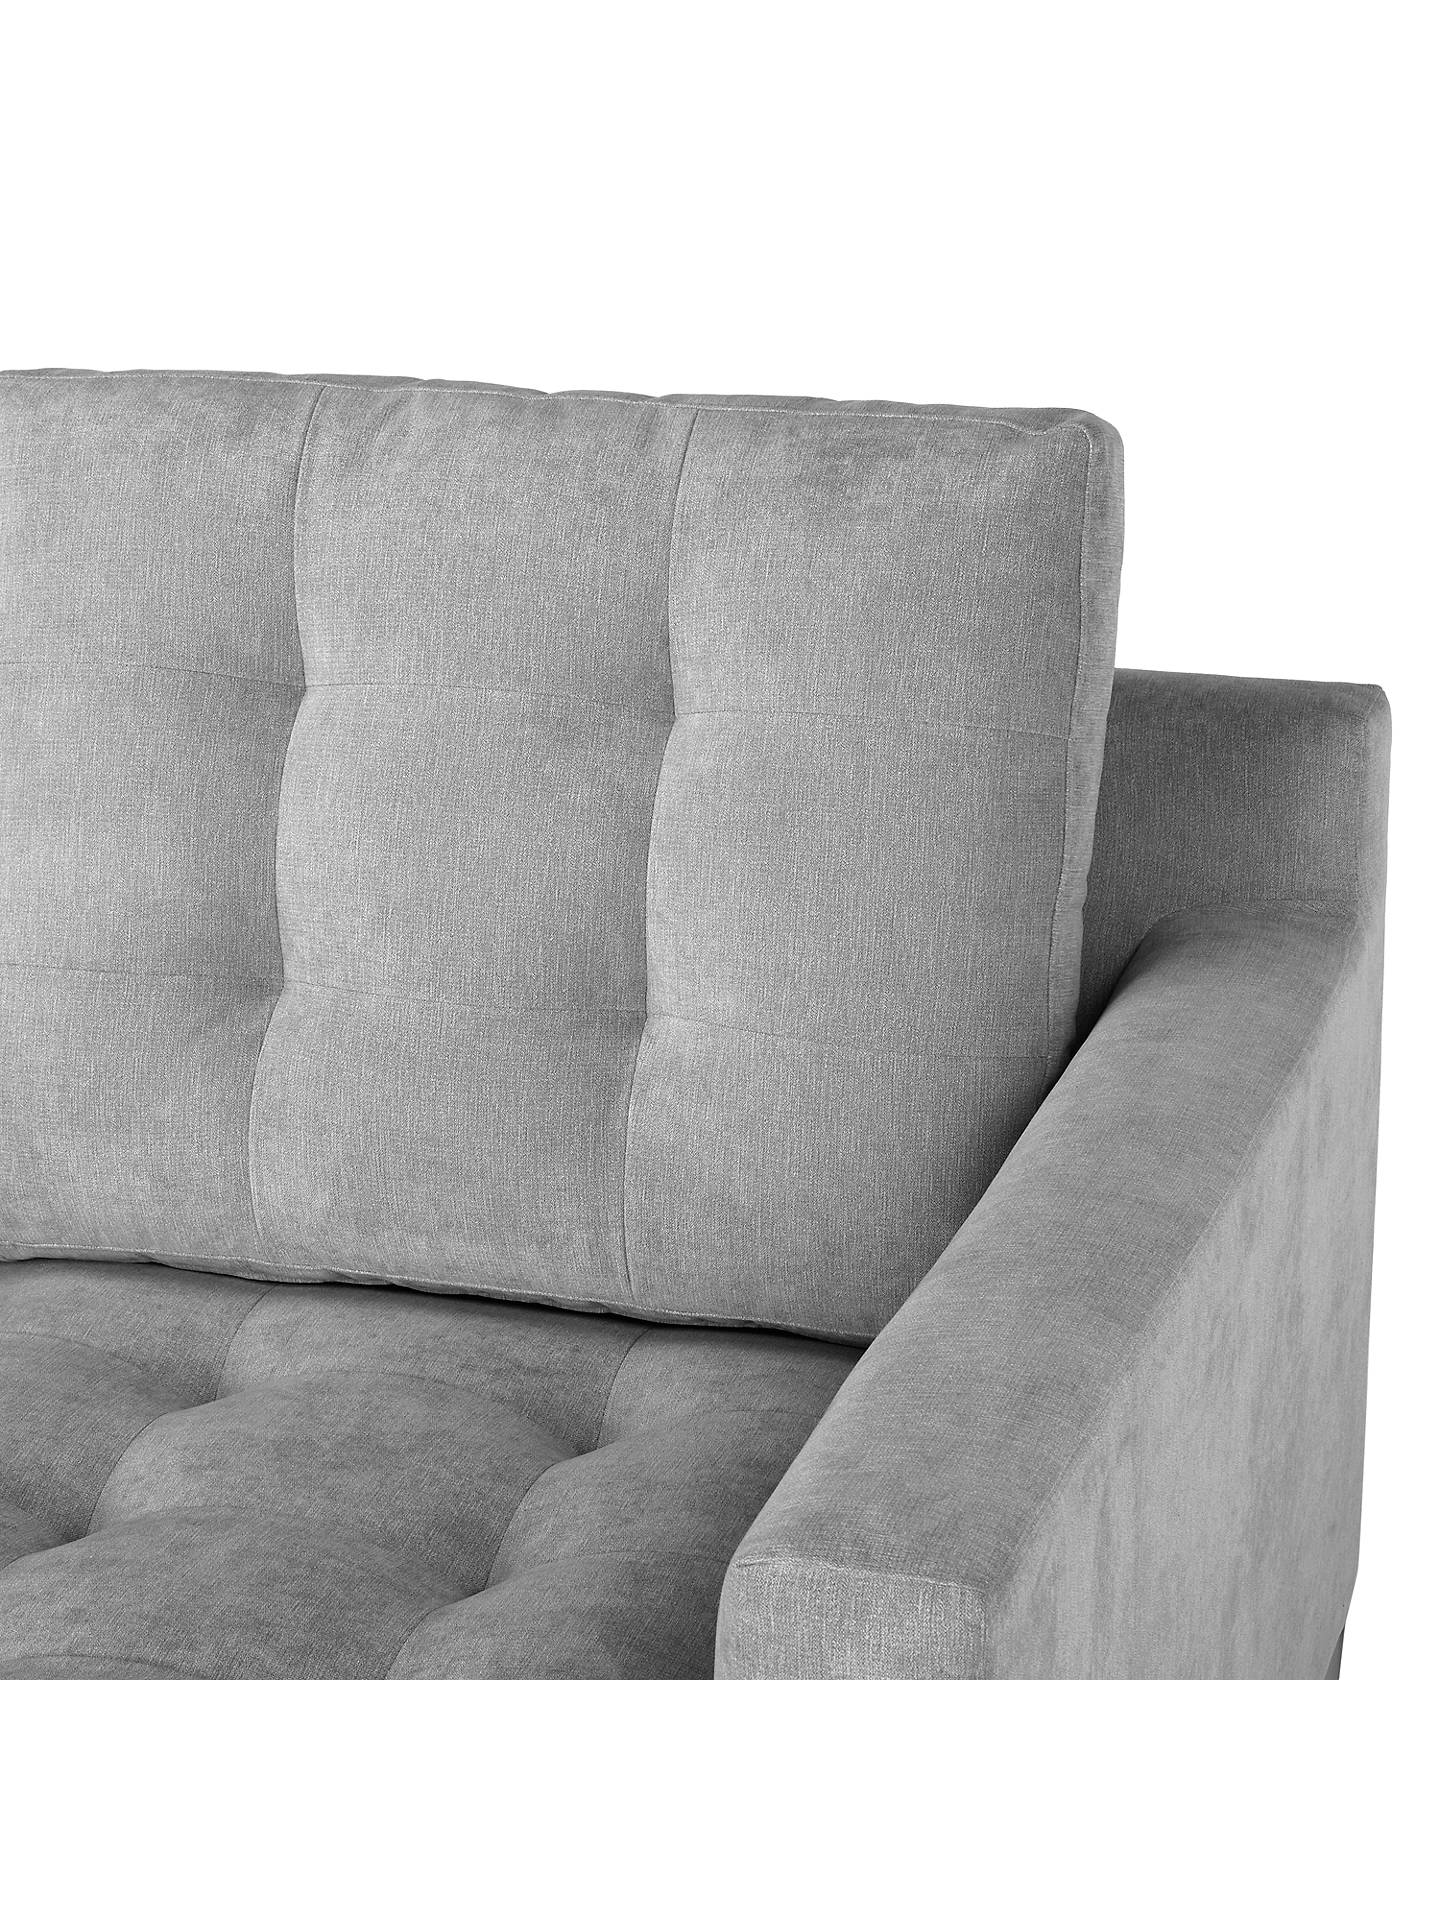 Buy John Lewis & Partners Draper RHF Chaise End Sofa Online at johnlewis.com